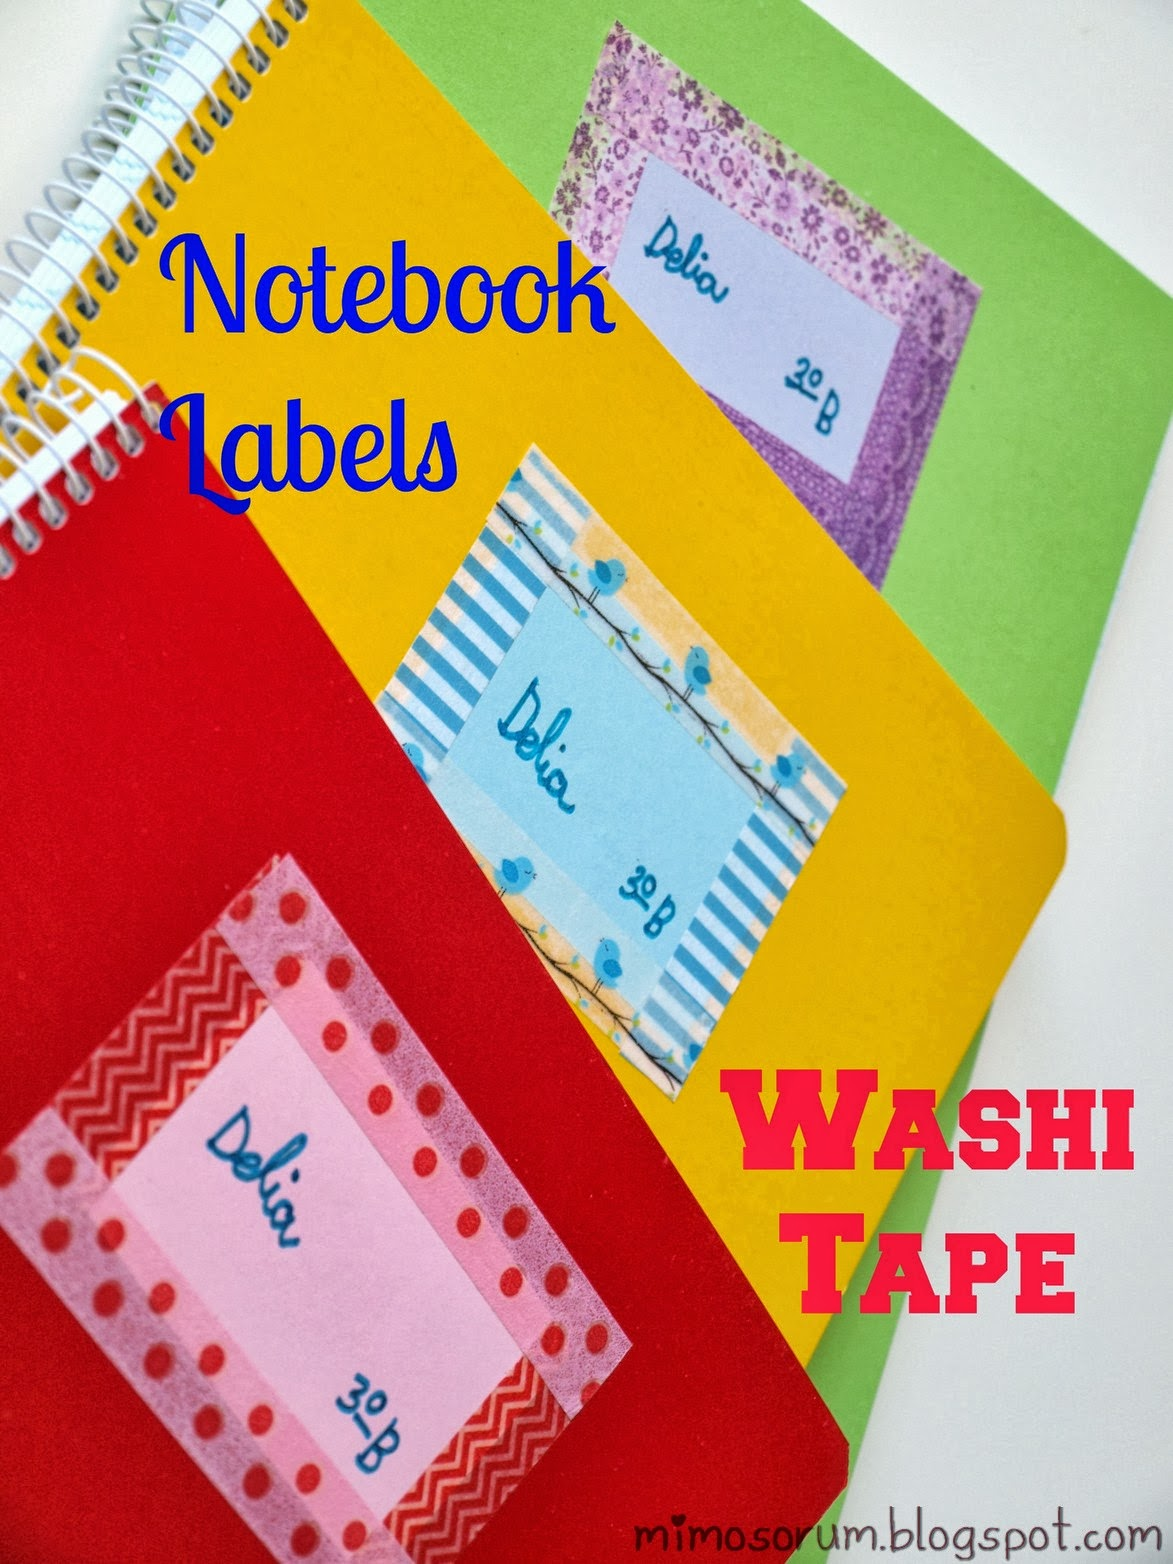 Notebook labels & Washi tape. Mimosorum